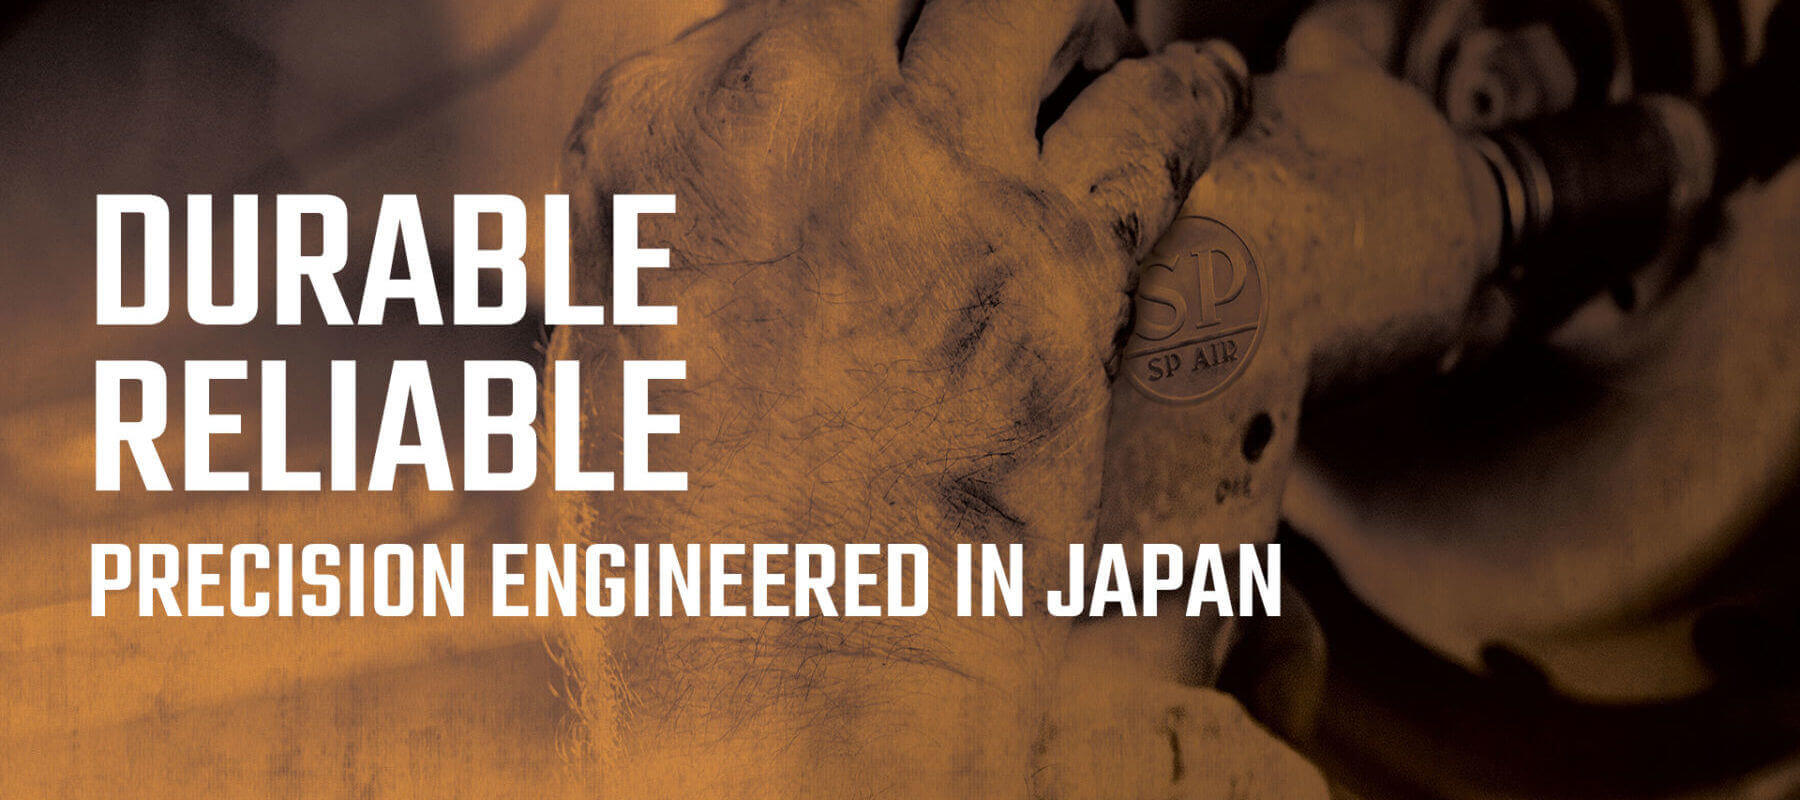 durable reliable precision engineered in Japan